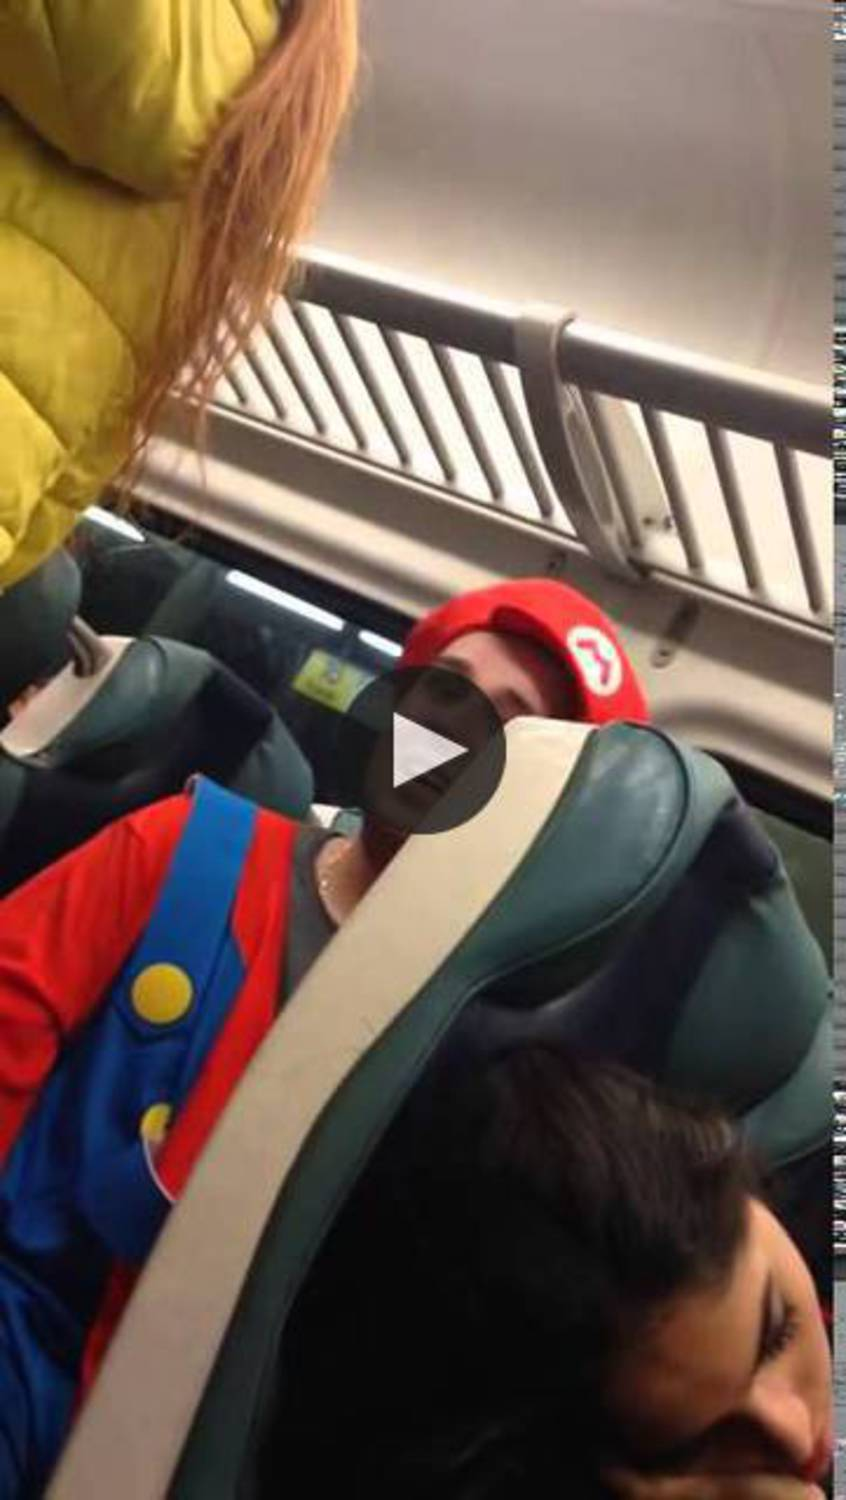 Juice Head Bully who Picks on Super Mario Gets Donkey Kong'd on NYC Train